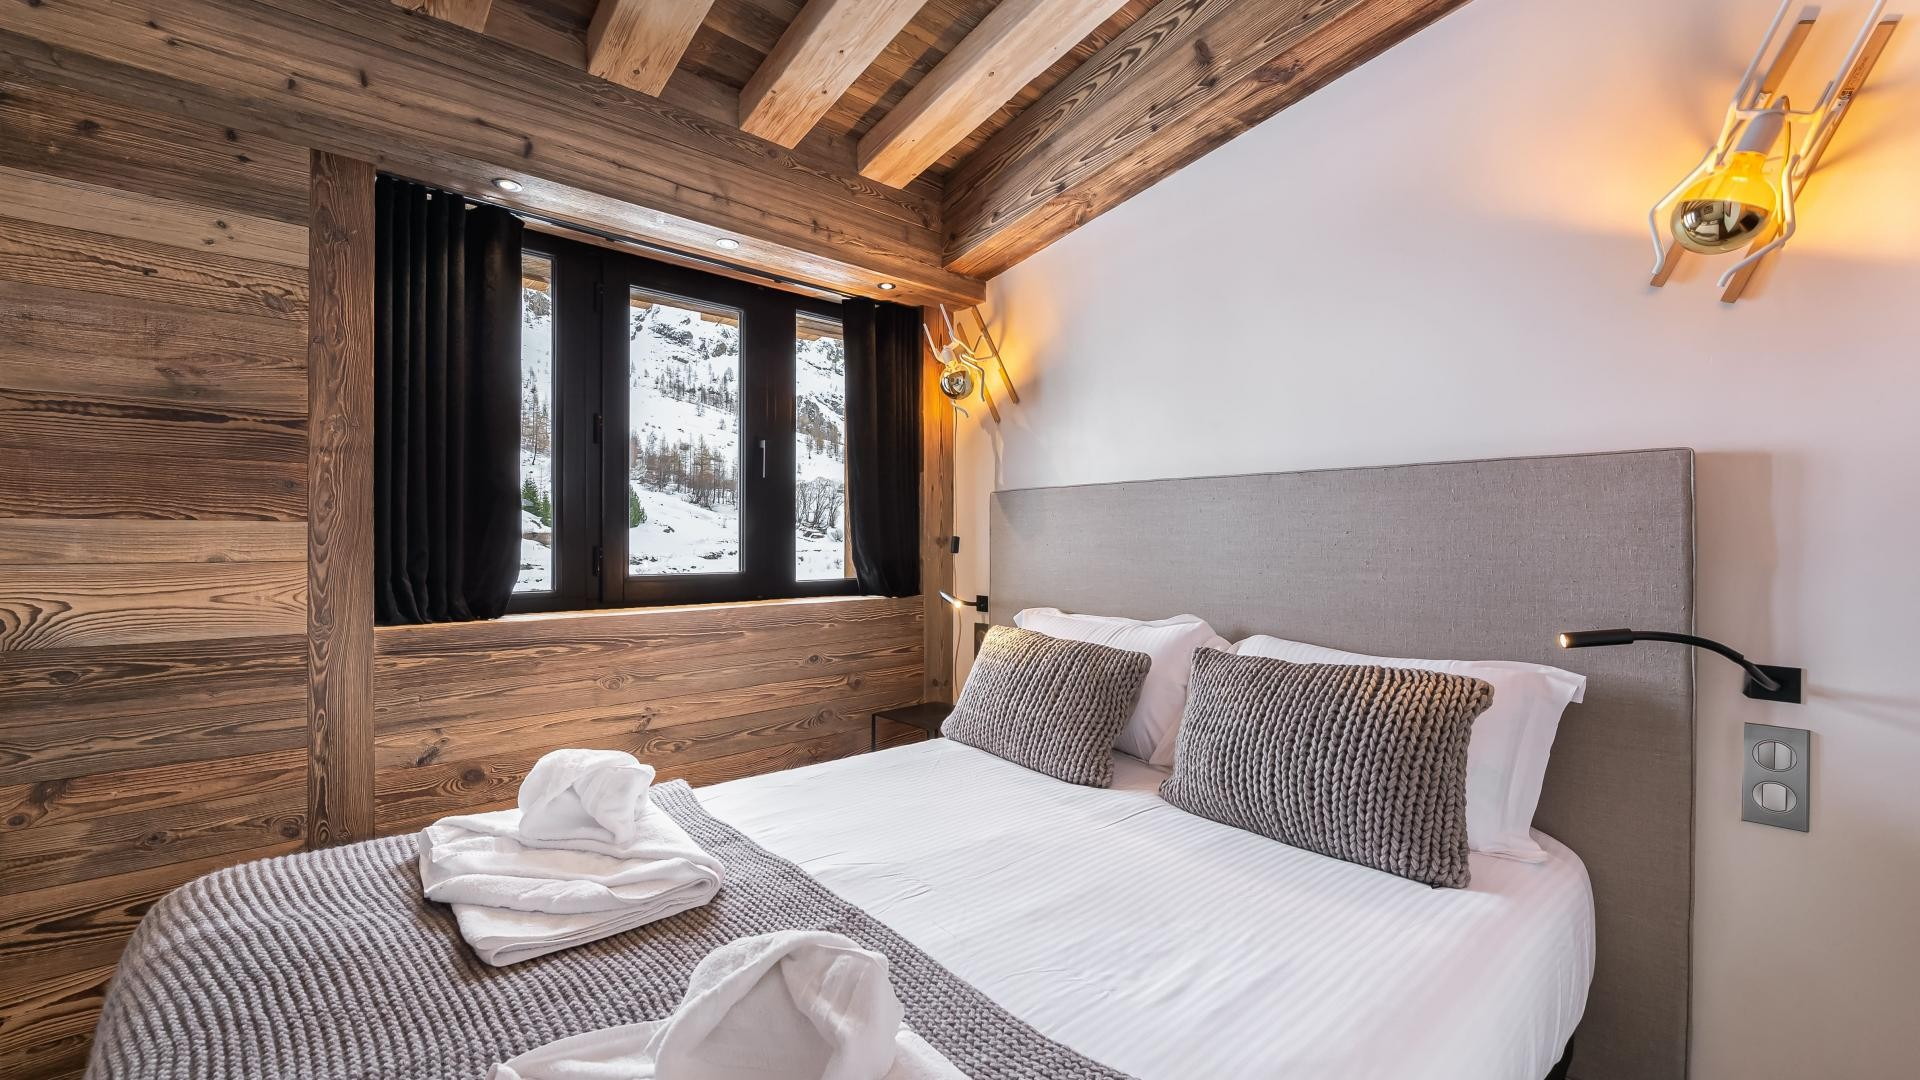 Val d'Isère Location Appartement Luxe Varvate Chambre3